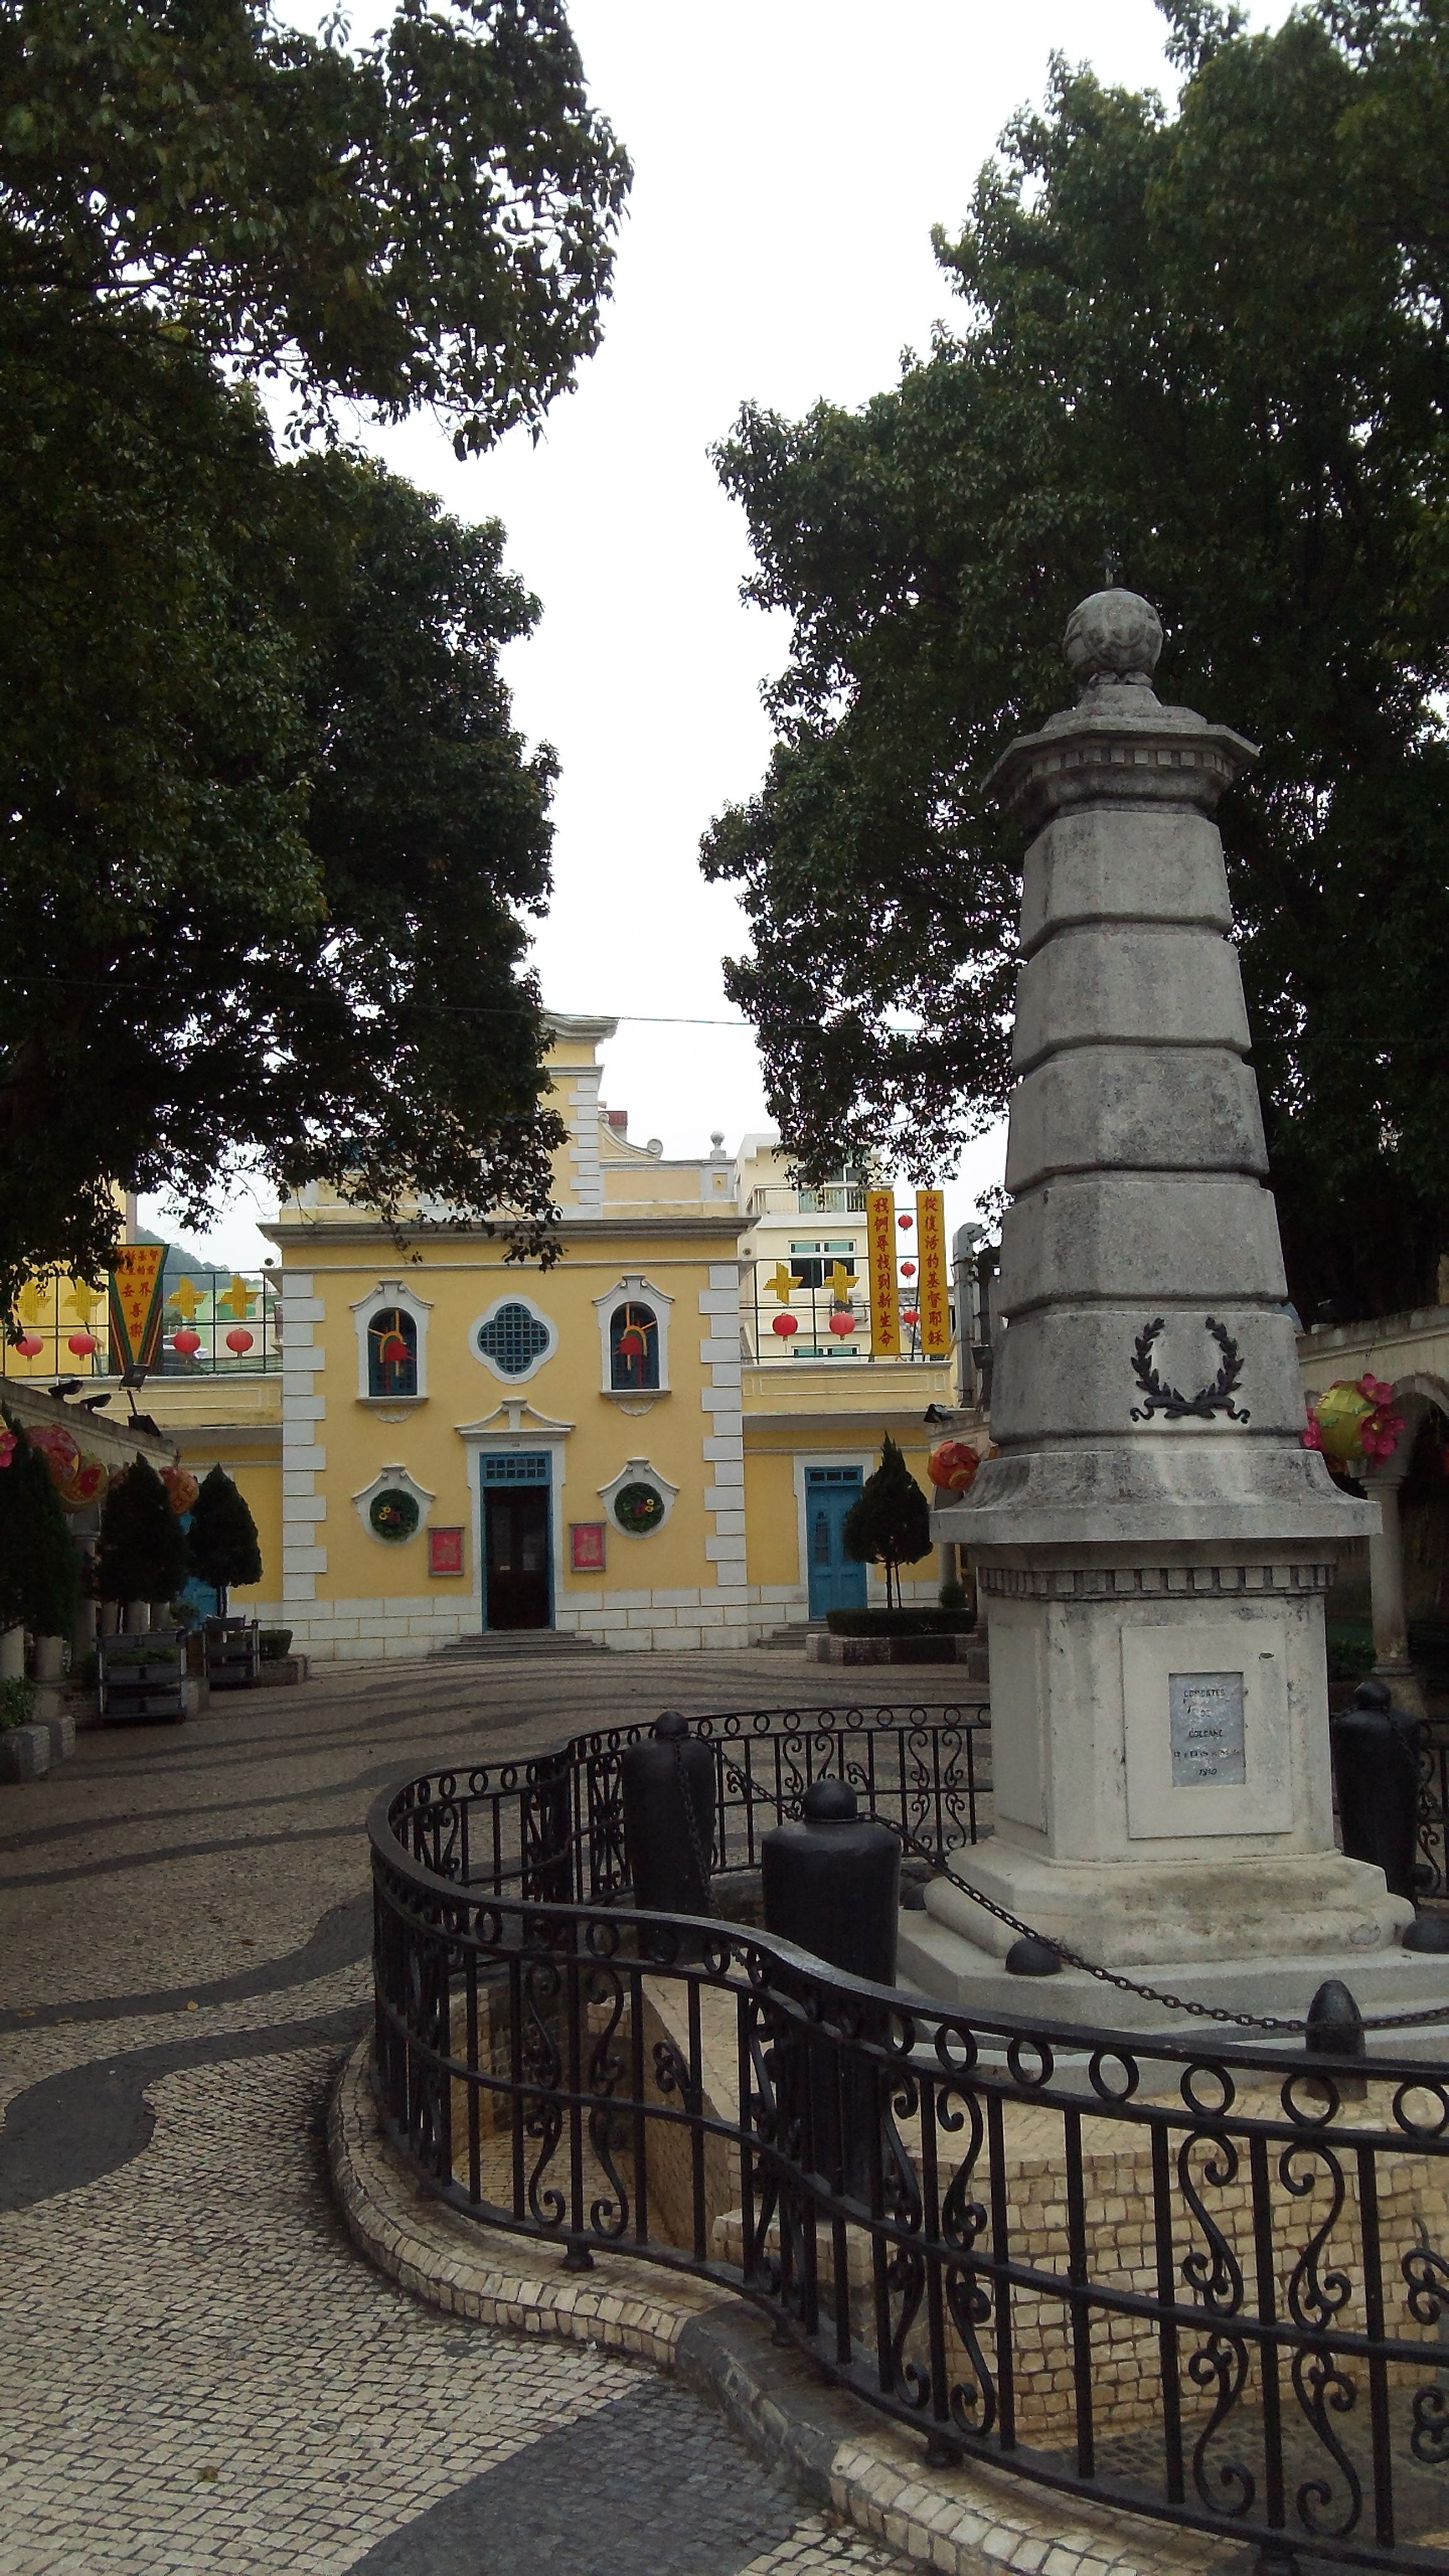 Statue Church and Plaza Coloane, Macau